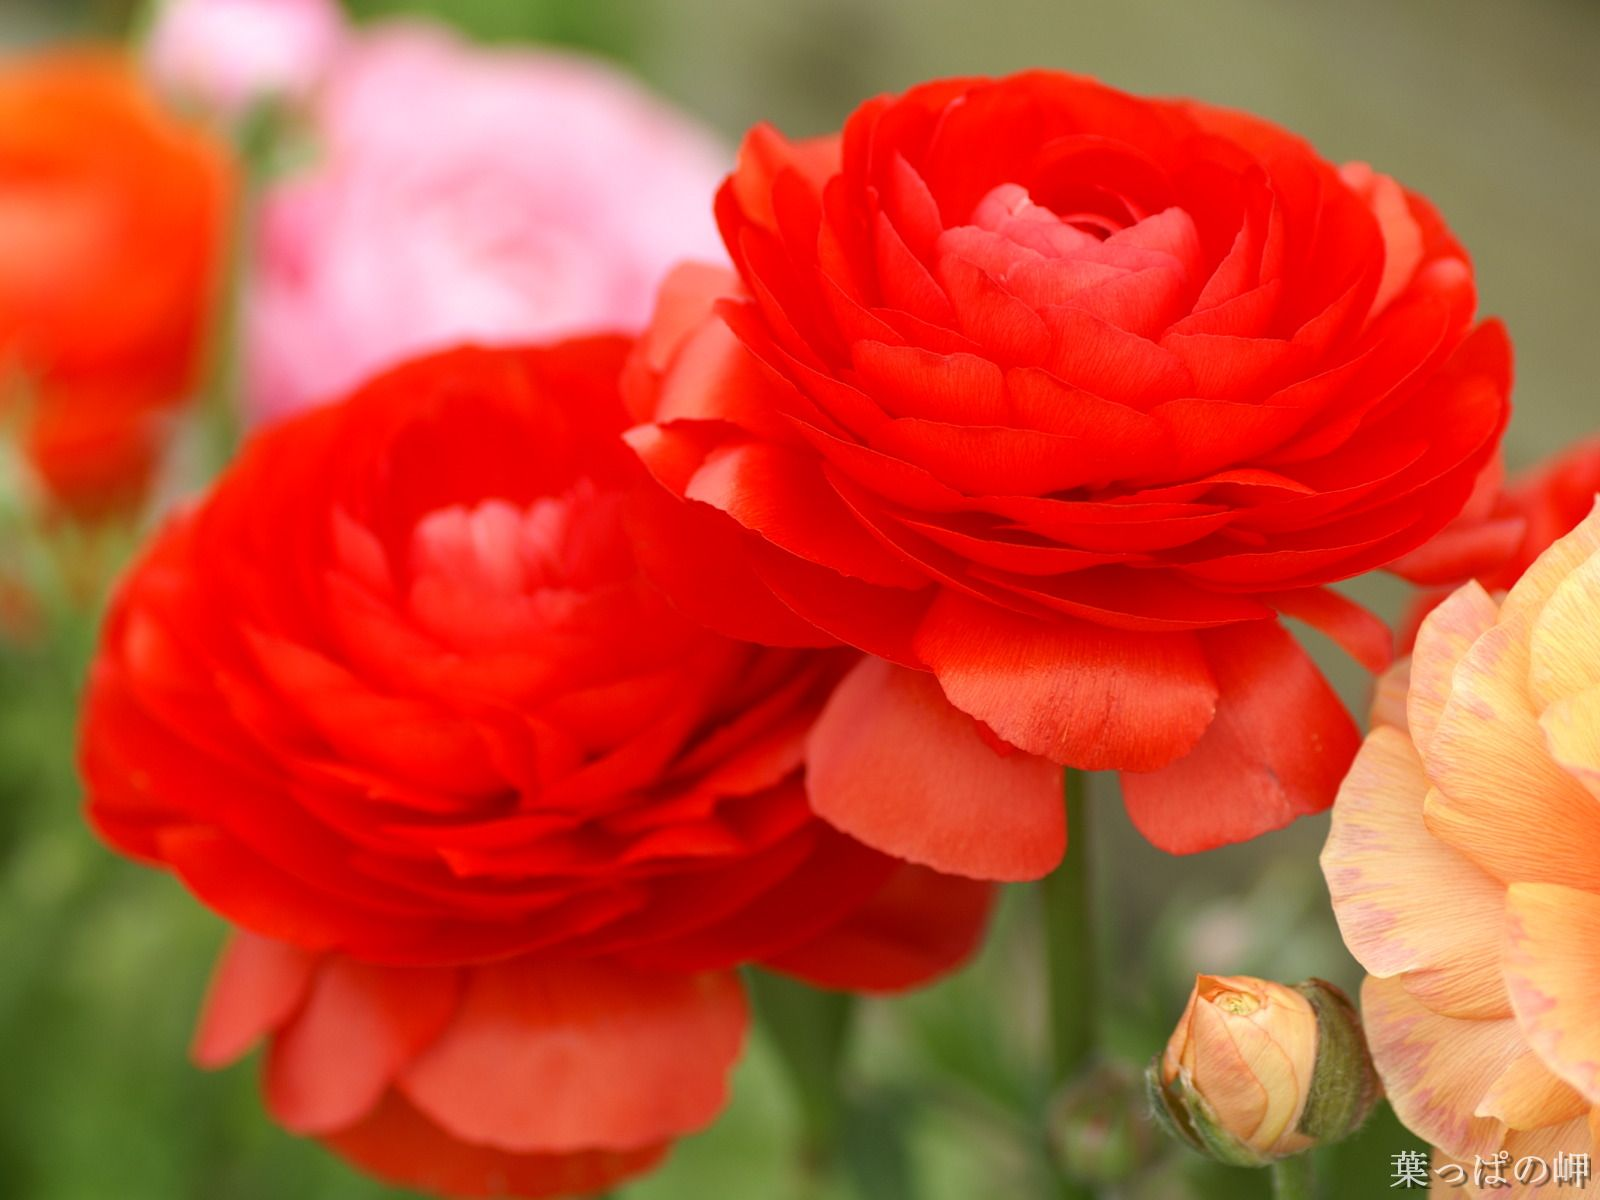 red flowers Google Search Red flower wallpaper, Red